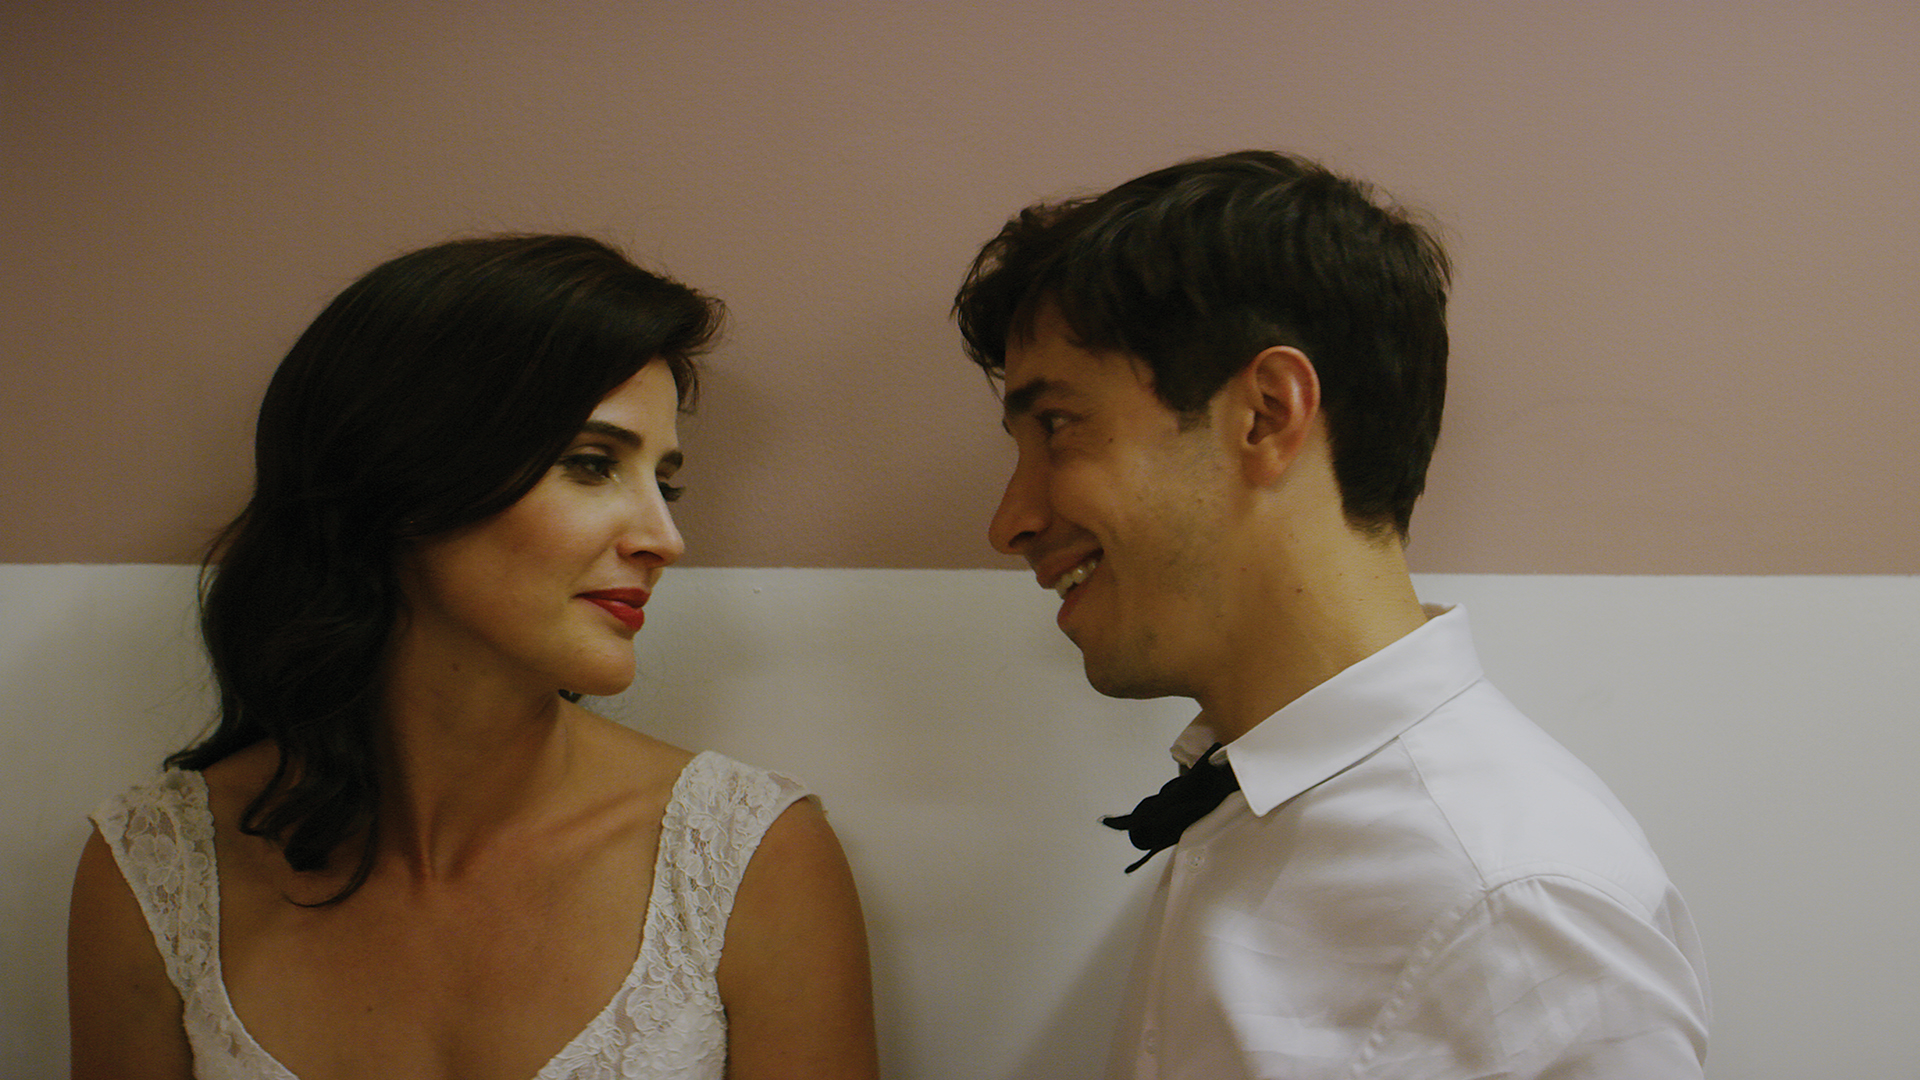 Cobie Smulders as Allison and Justin Long as Adam in LITERALLY, RIGHT BEFORE AARON. Photo credit: Seamus Tierney.